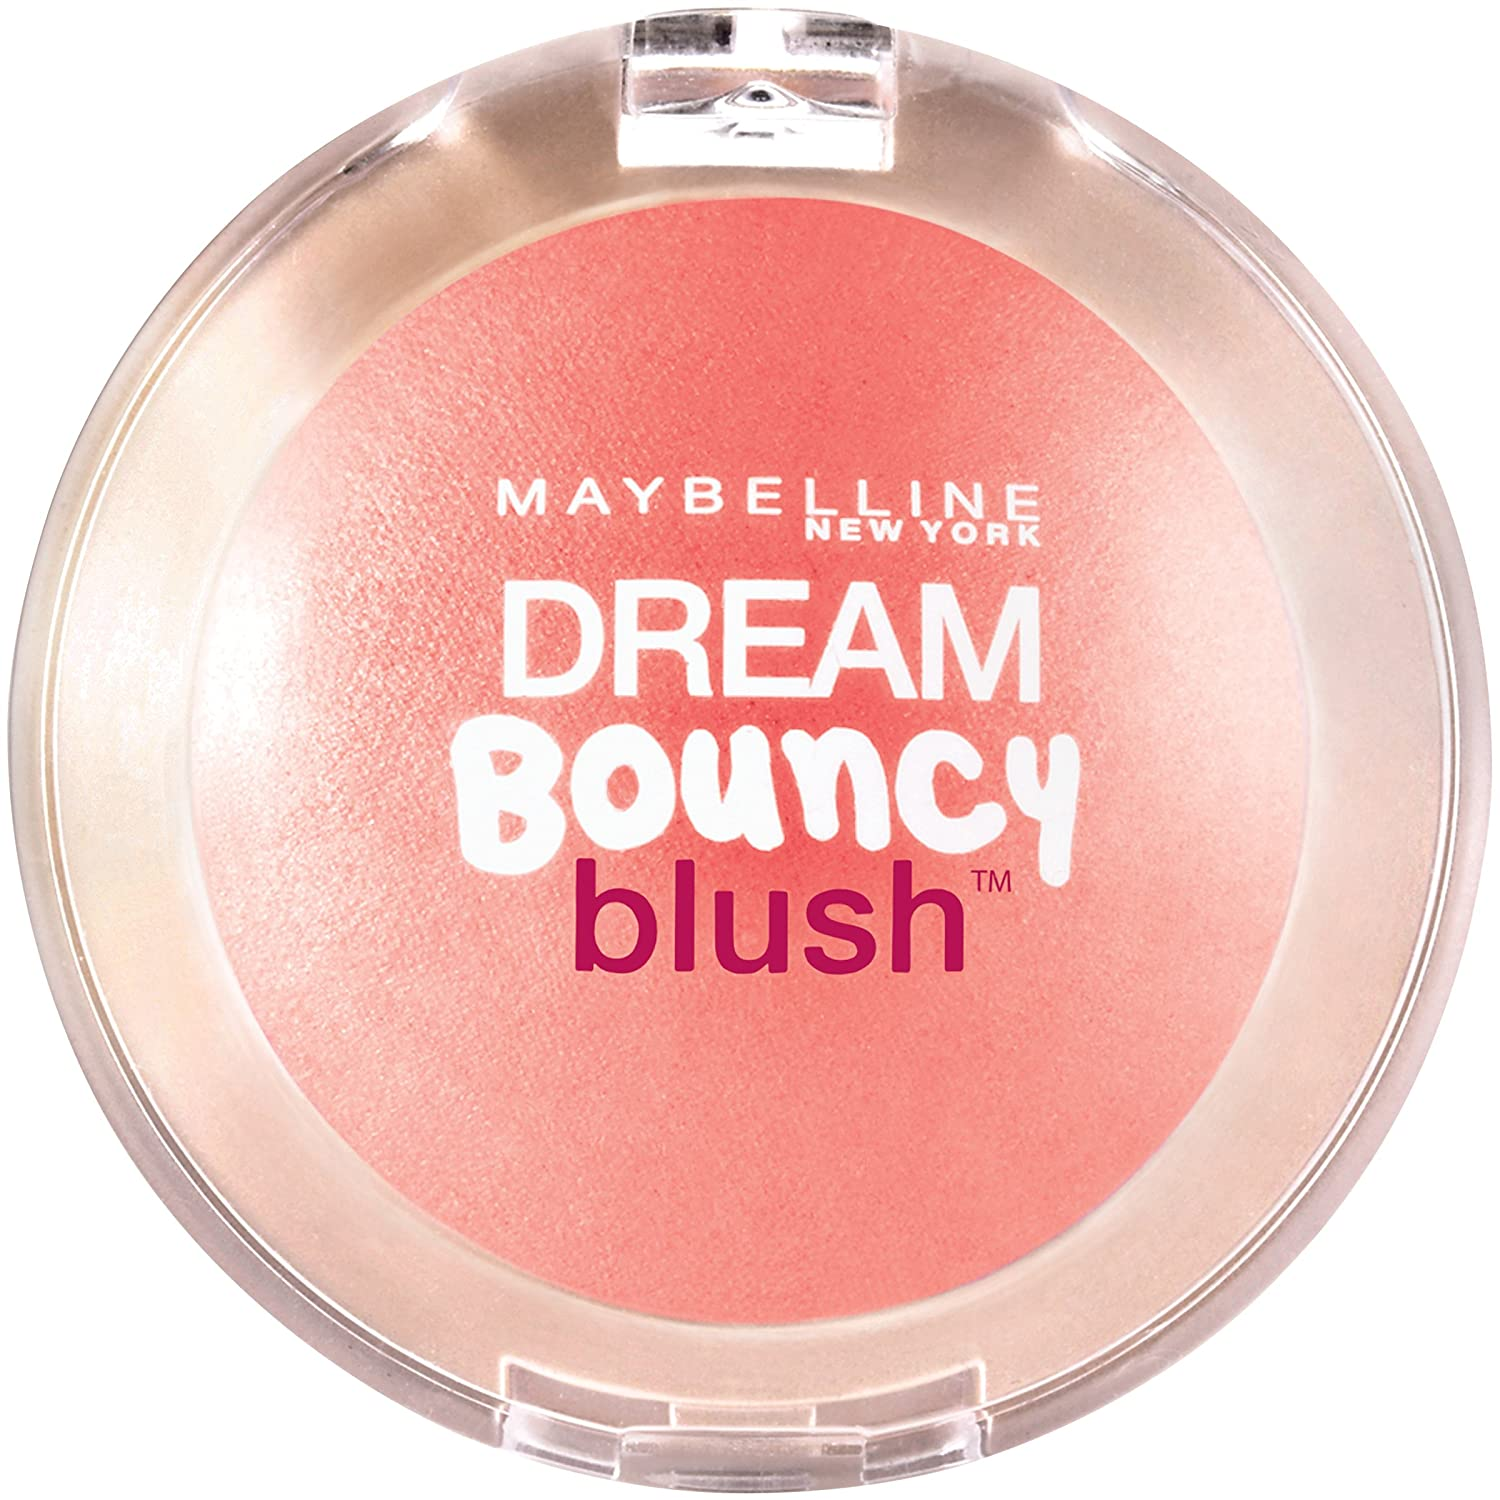 Maybelline New York Dream Bouncy Blush, Peach Satin, 0.19 Ounce